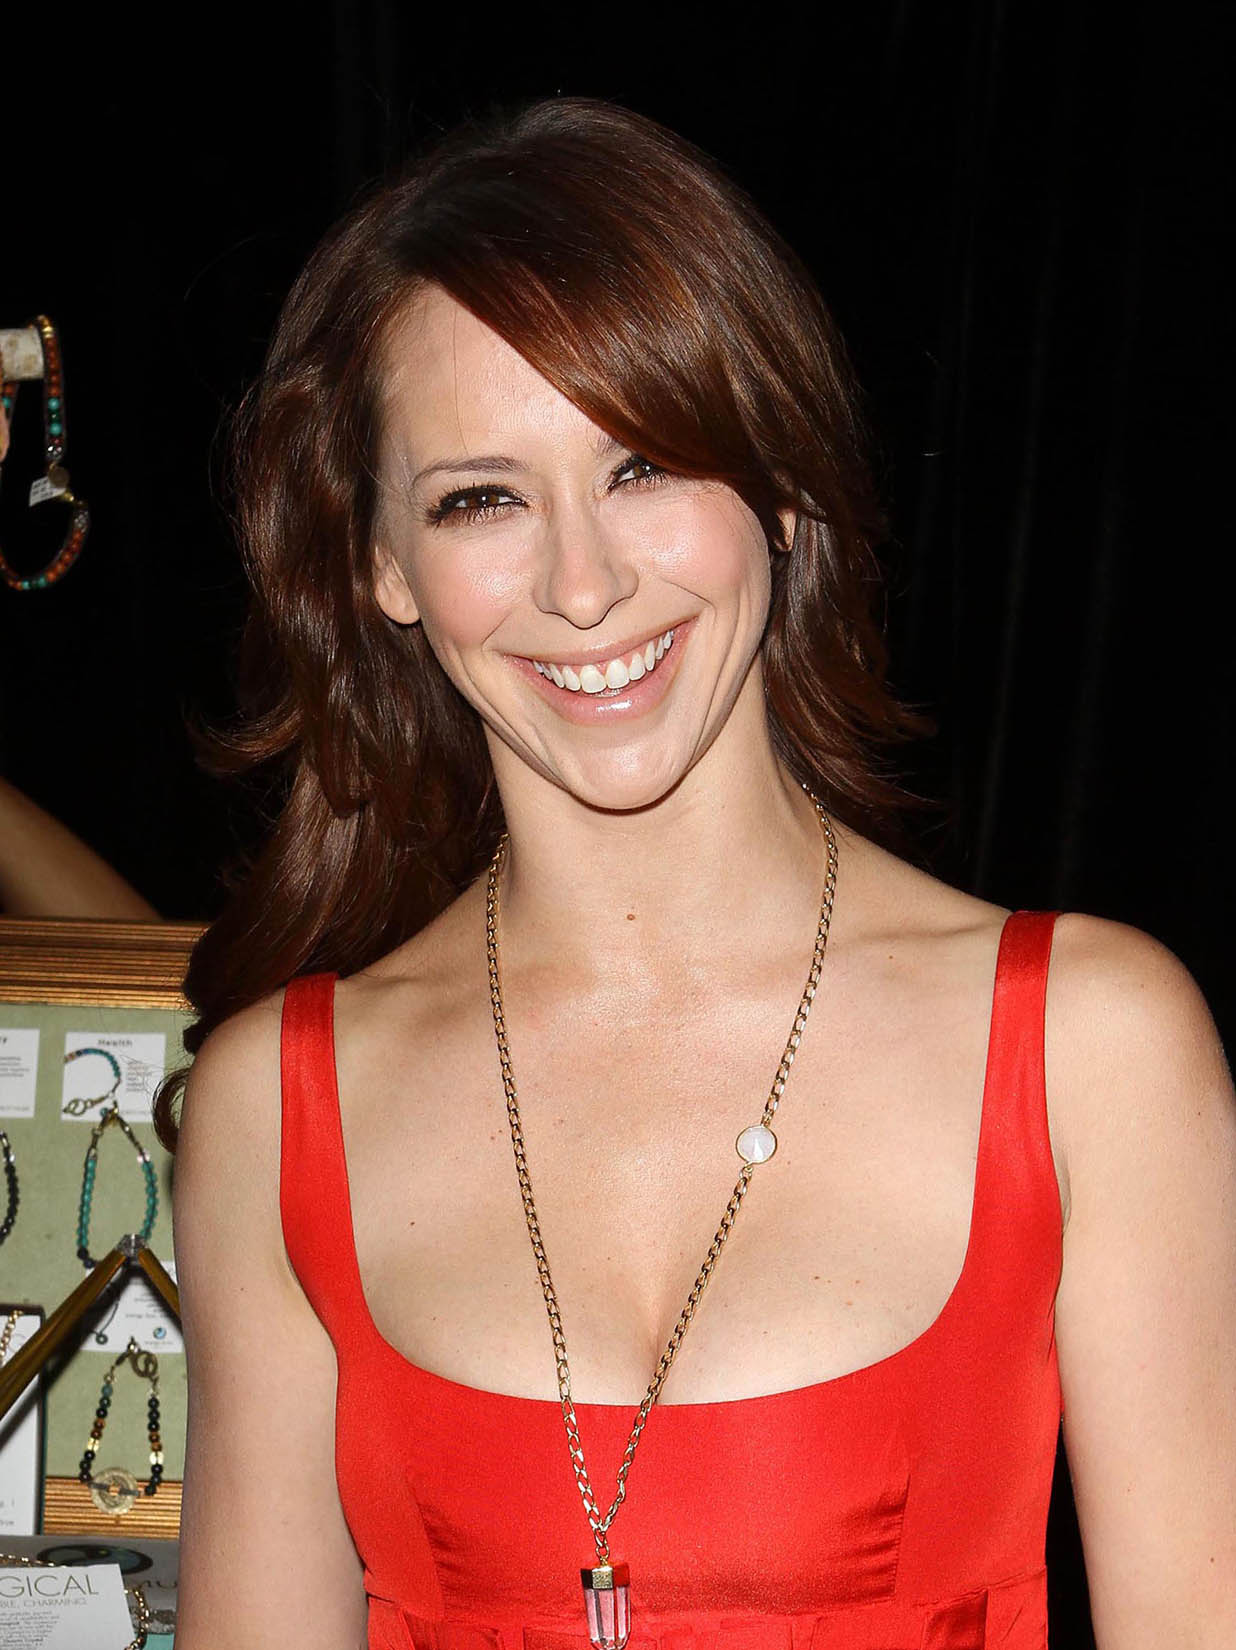 Cleavage Jennifer Love Hewitt naked (37 photo), Topless, Leaked, Boobs, butt 2017